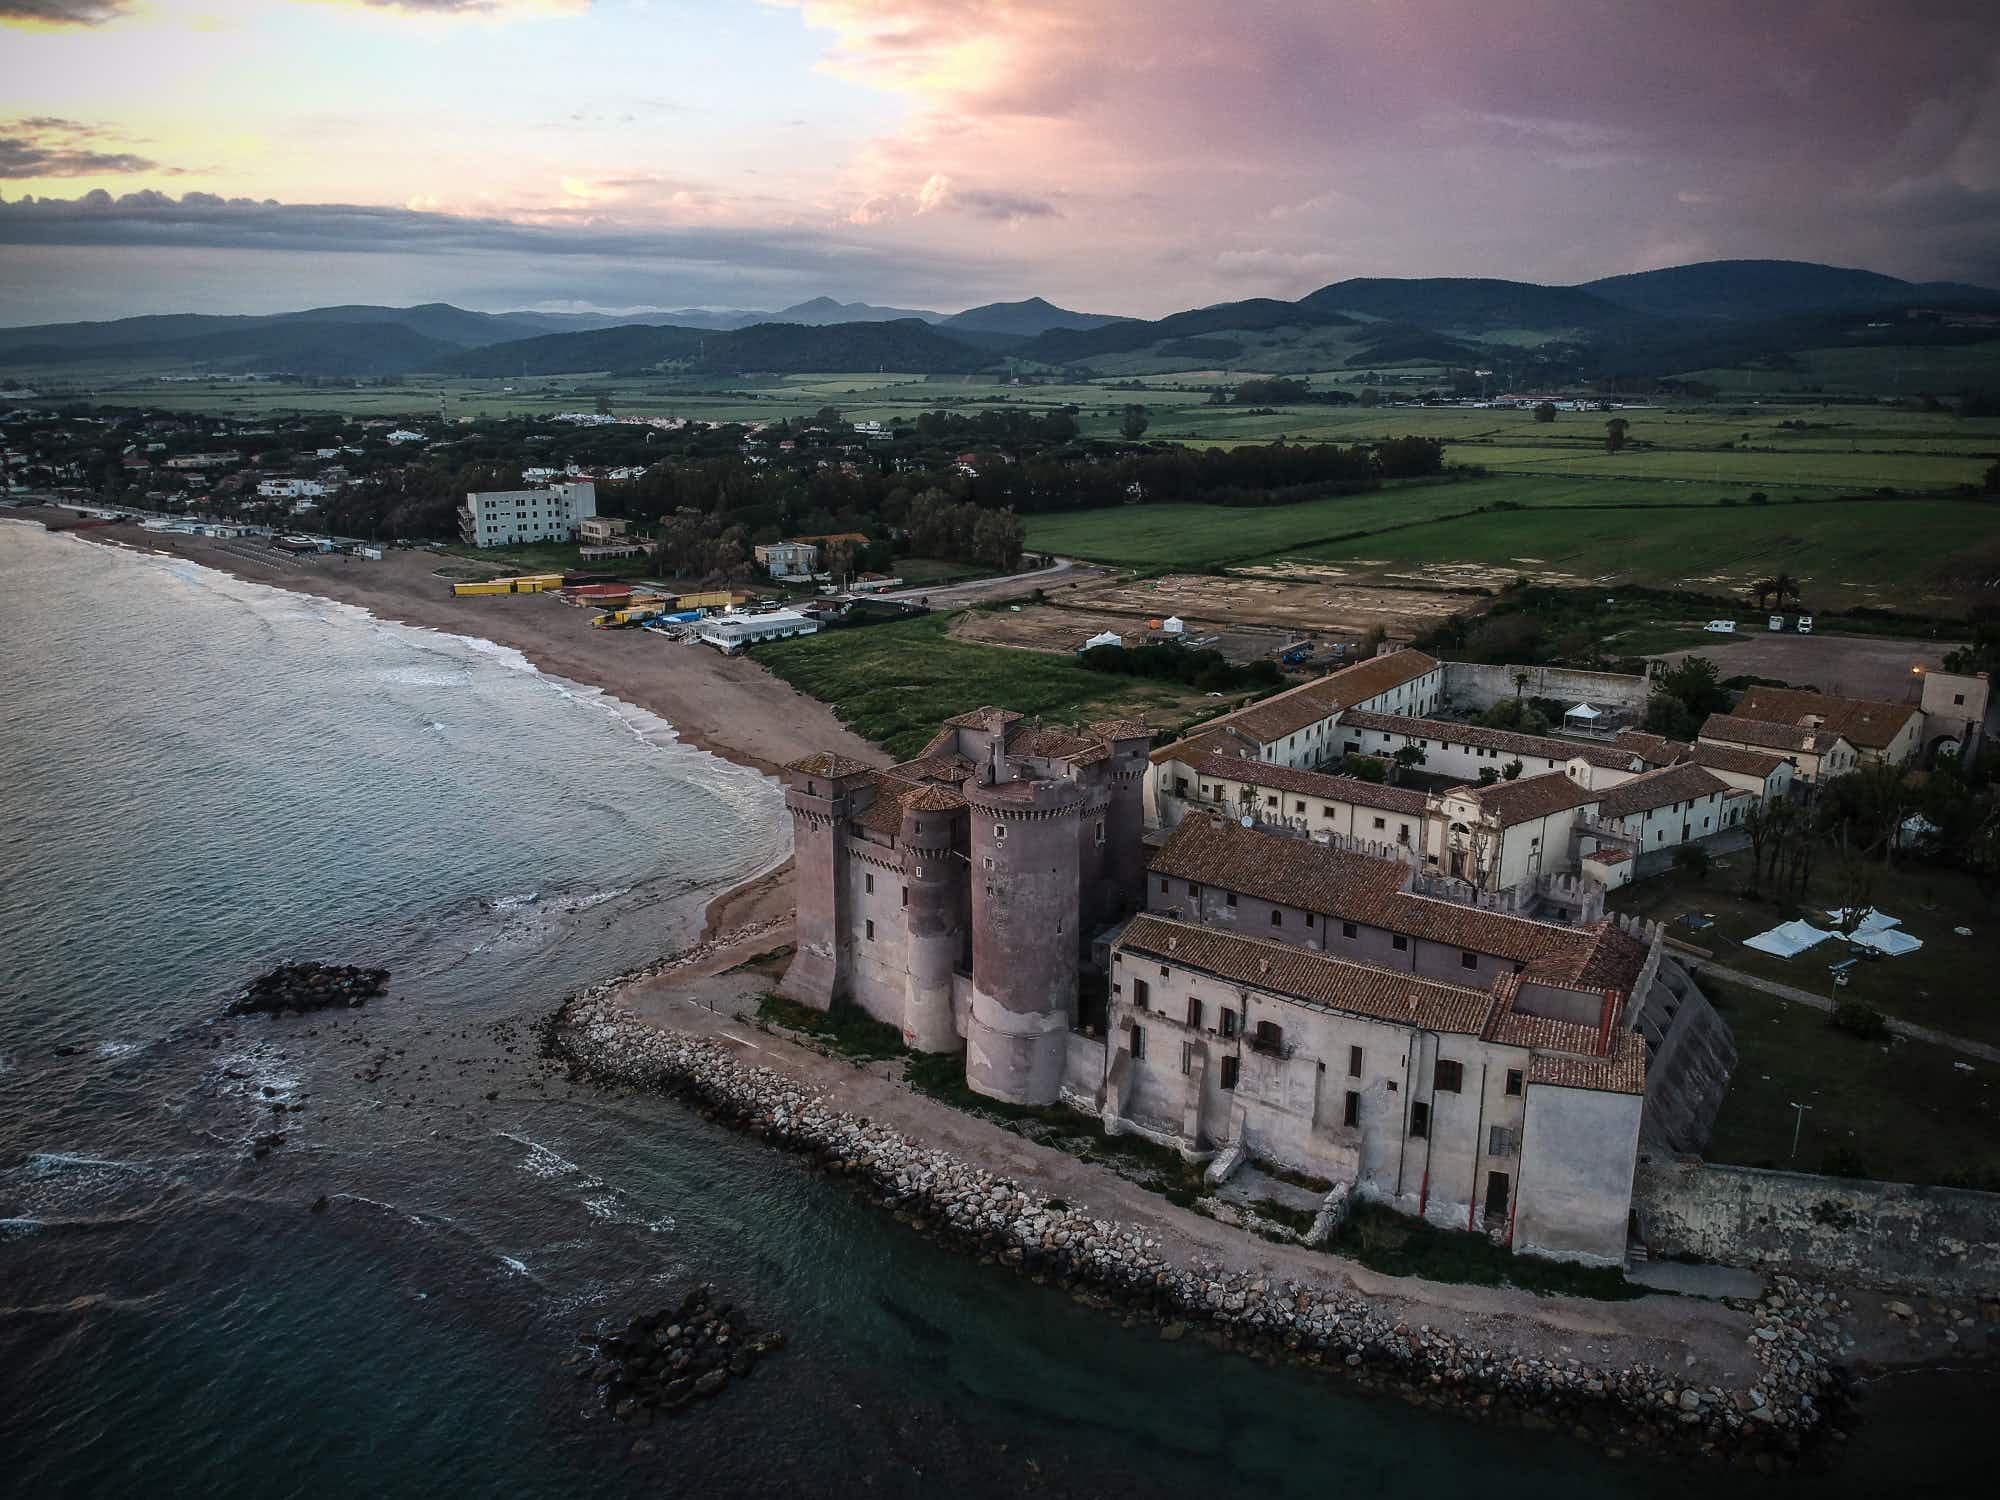 This medieval Italian castle is hiding a very modern hostel